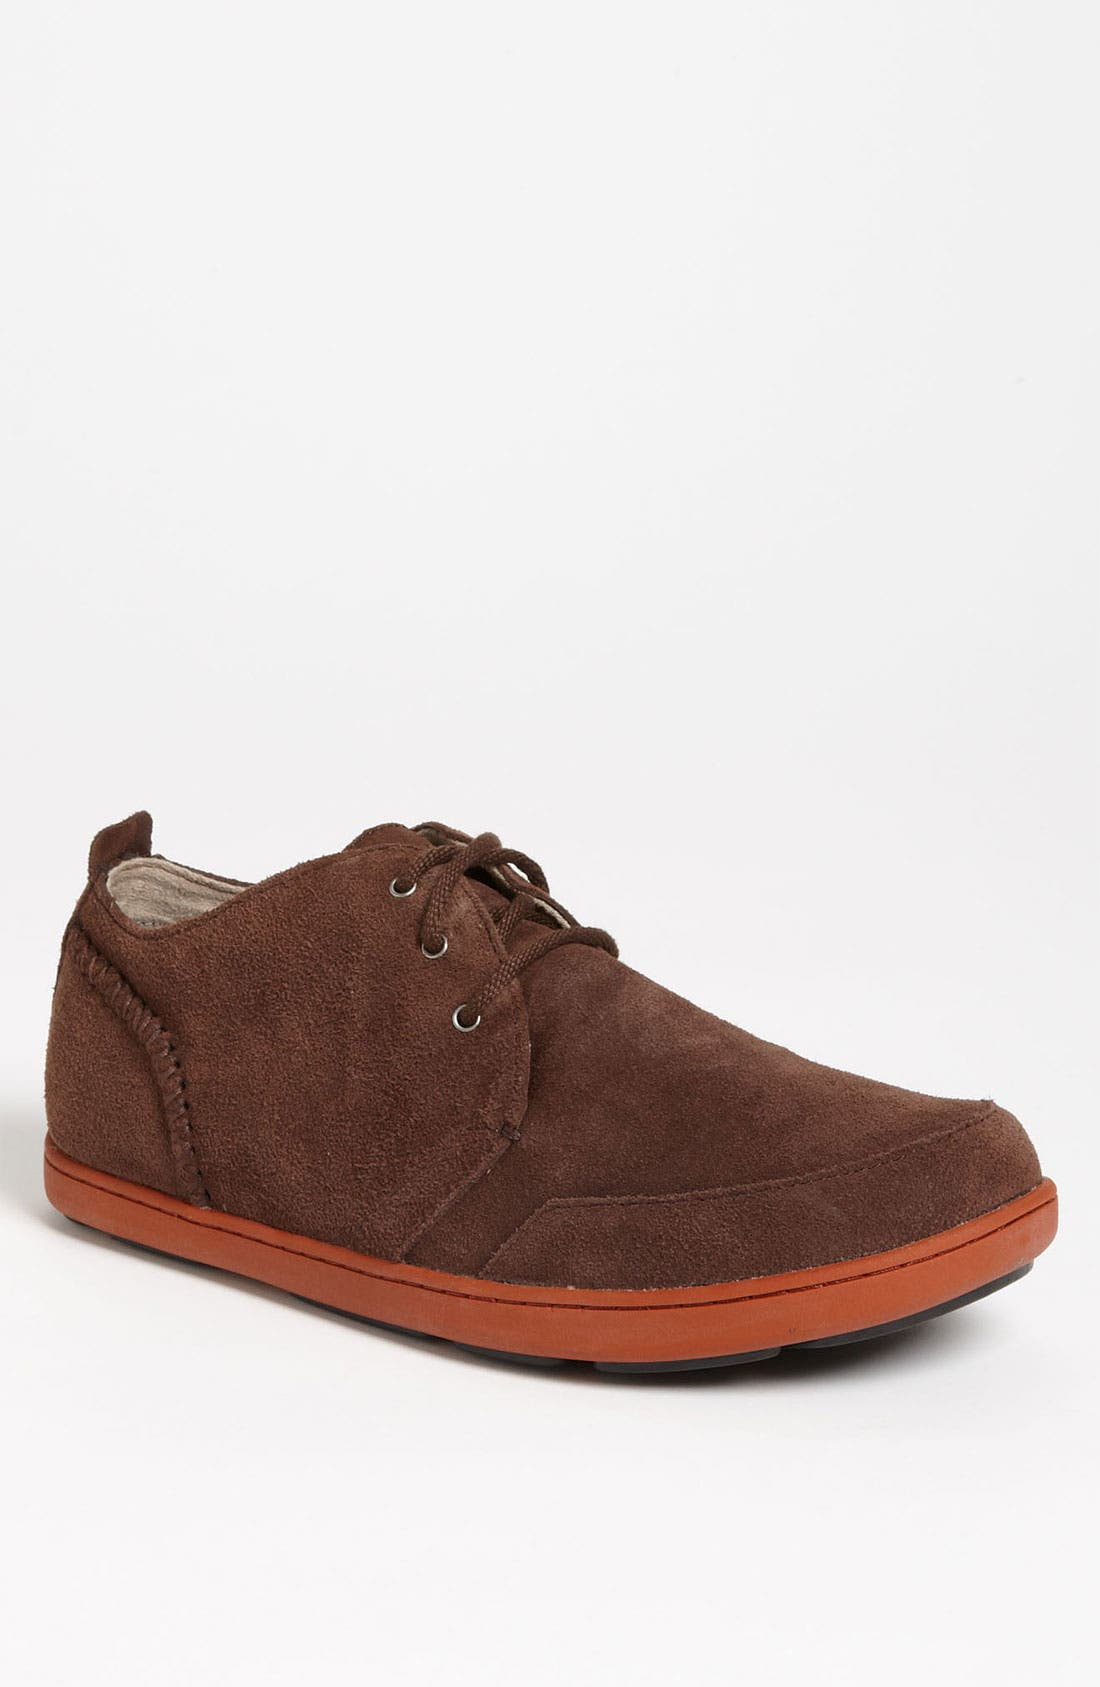 Alternate Image 1 Selected - OluKai 'Maki' Suede Sneaker